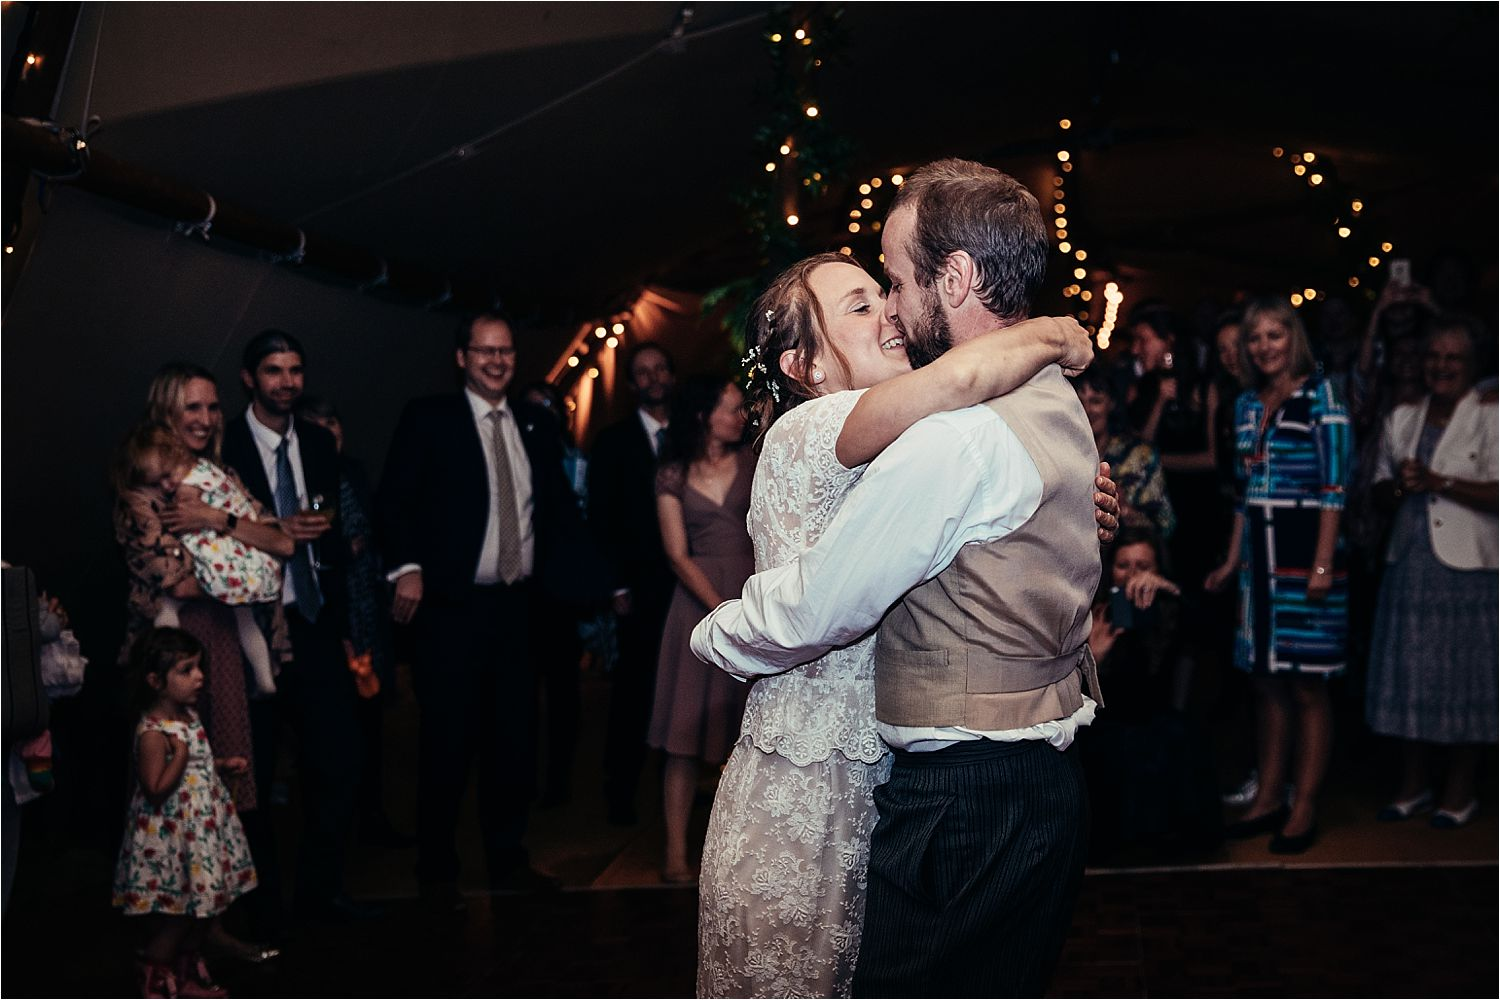 Guests watching the first dance at North West Tipi wedding reception